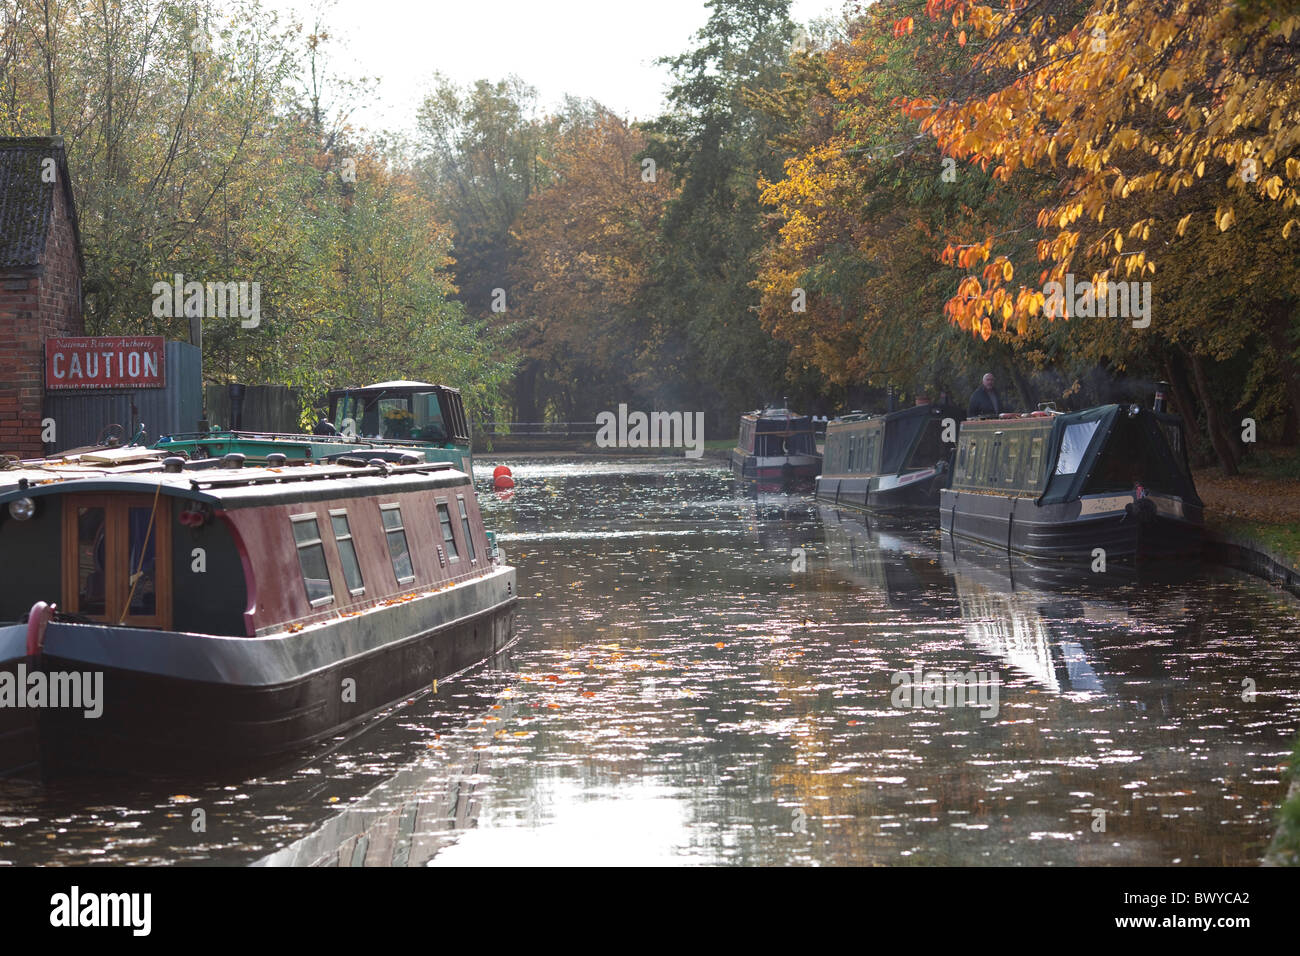 The Oxford canal in Jericho, Oxford, Autumn leaves . - Stock Image